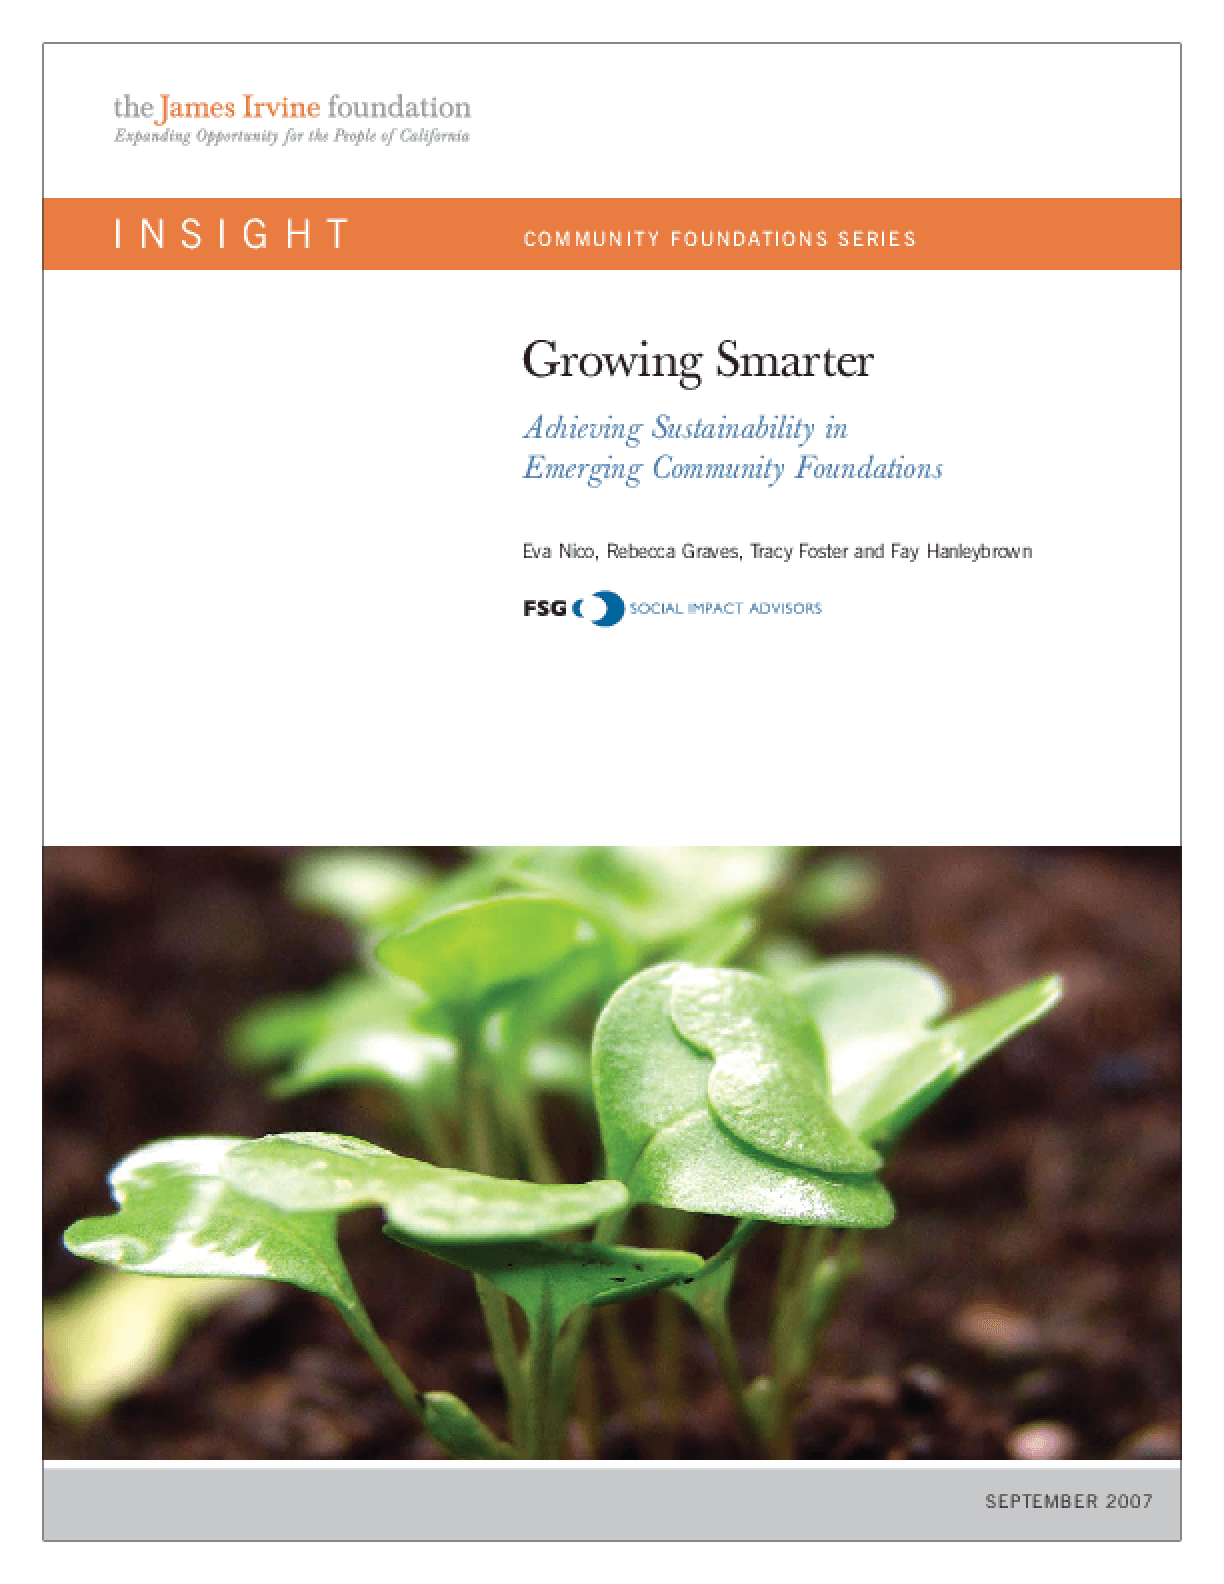 Growing Smarter: Achieving Sustainability in Emerging Community Foundations